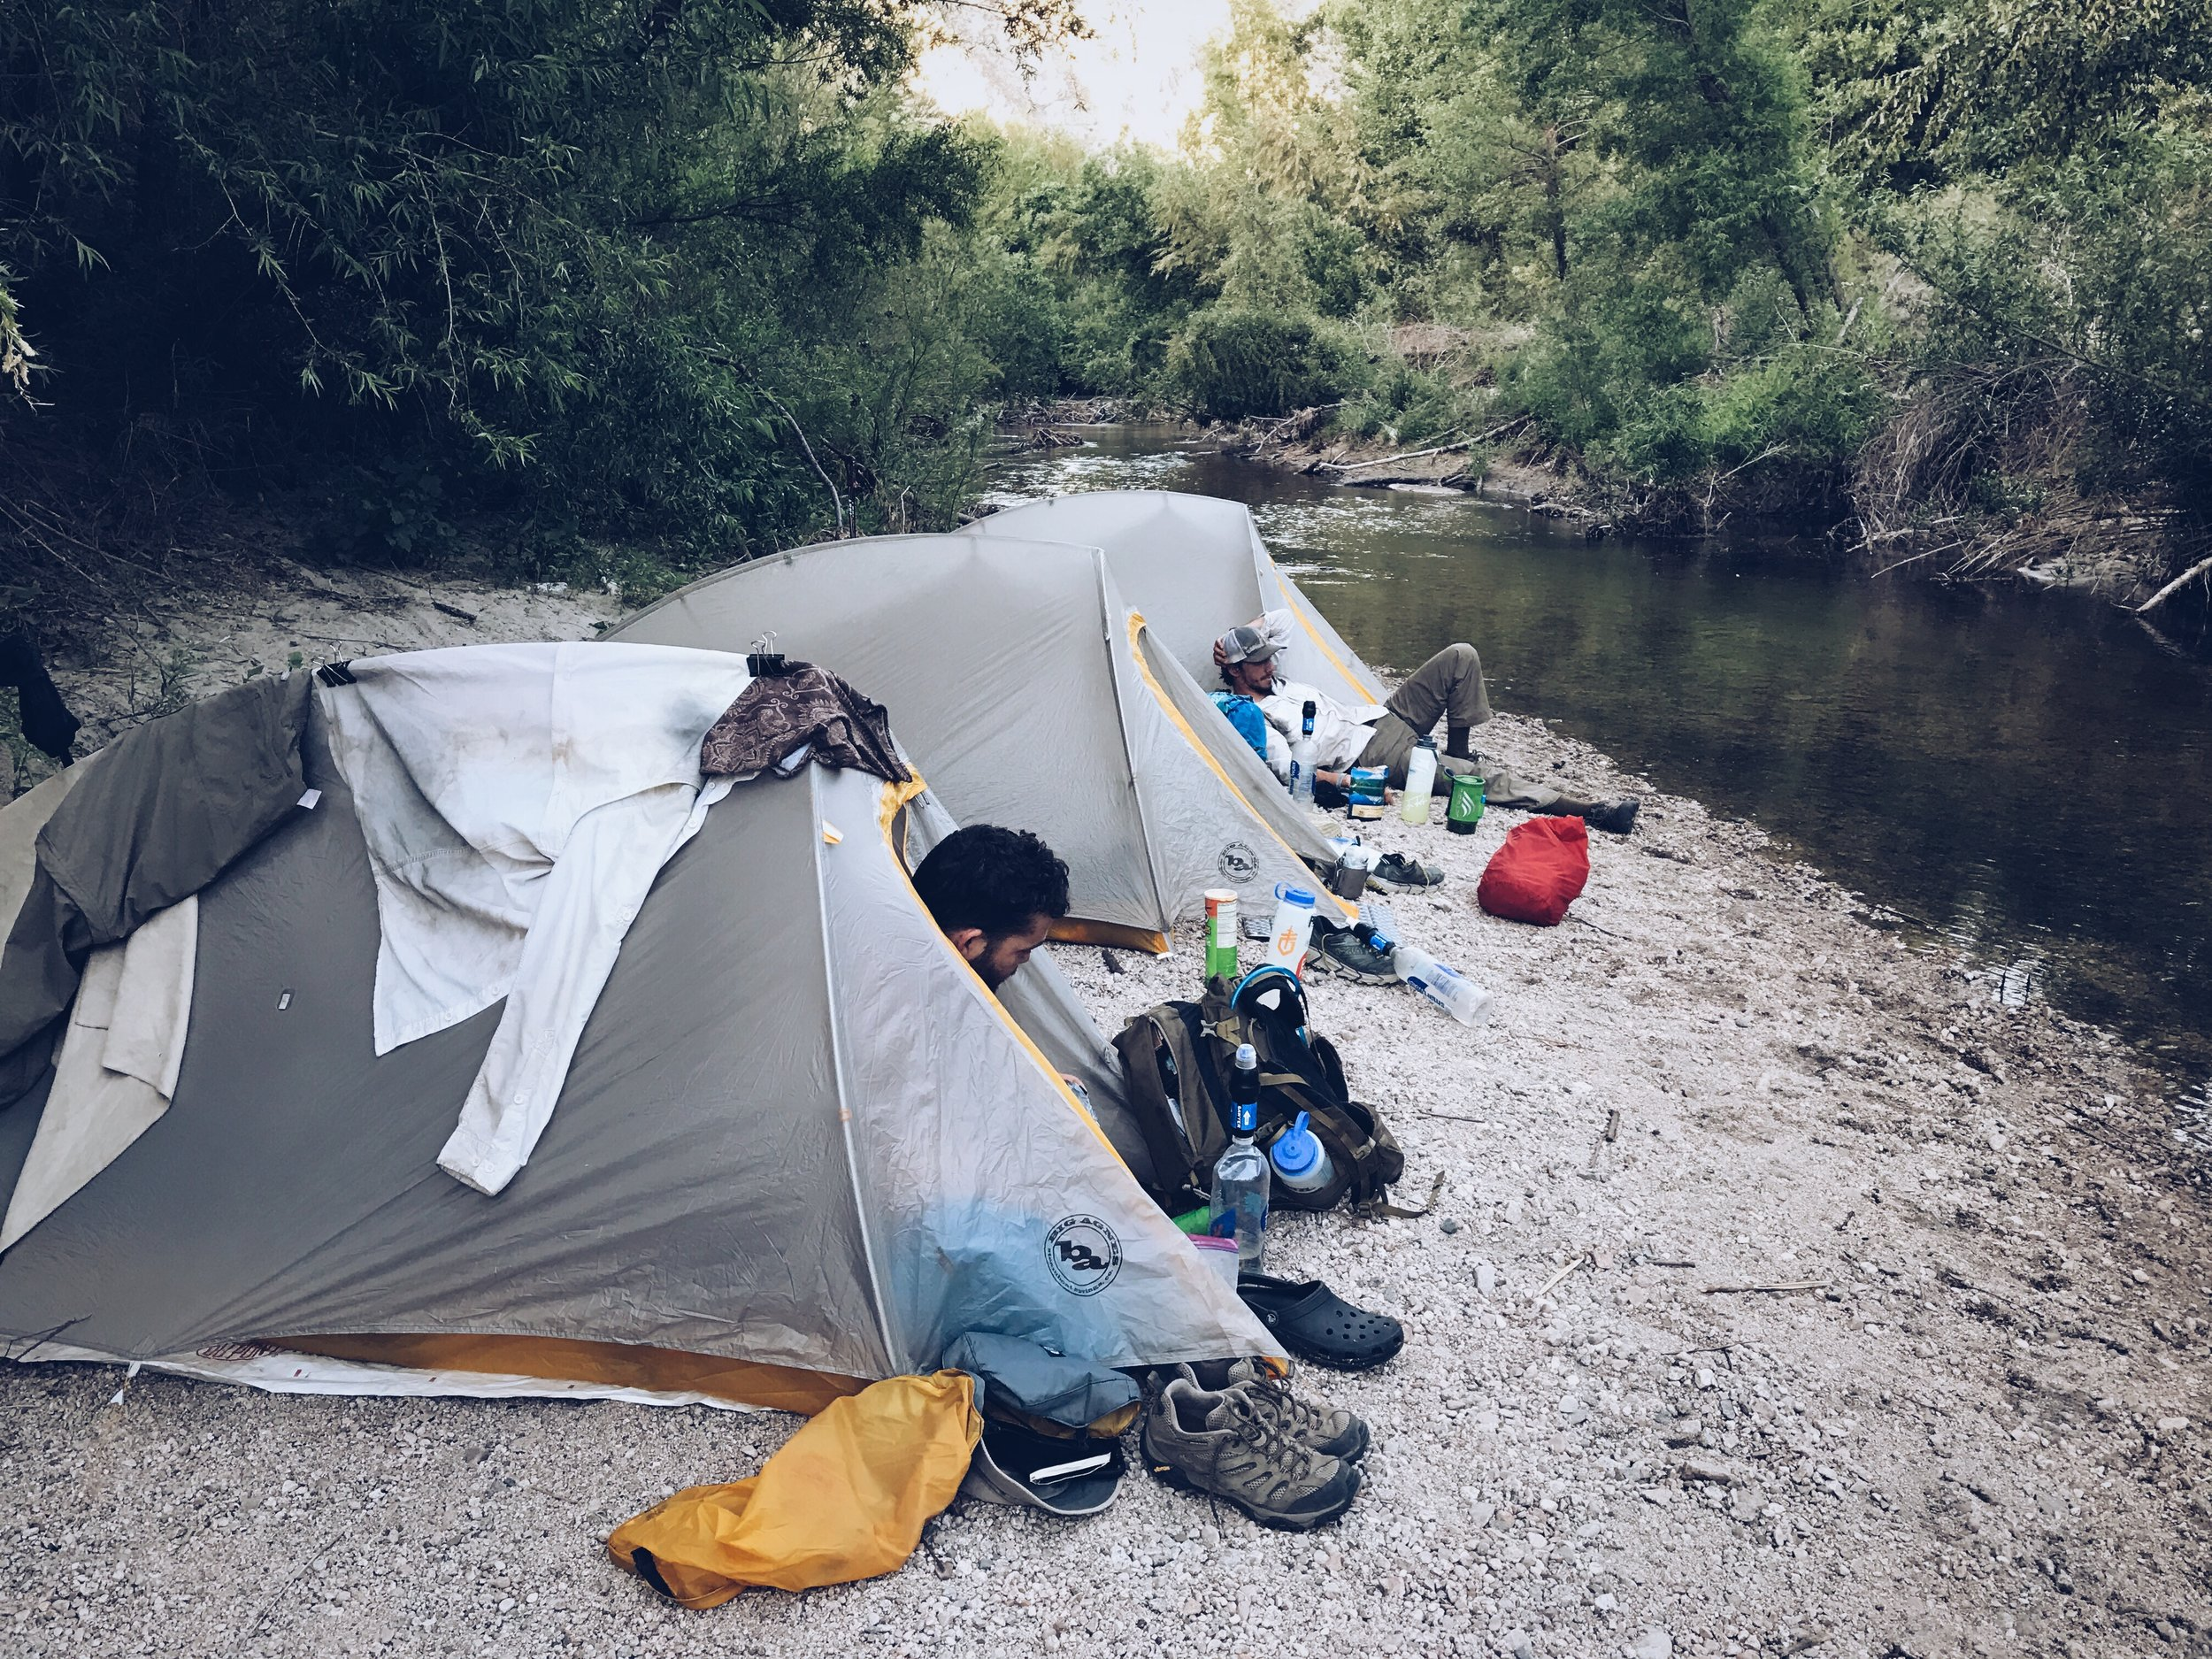 Standard double wall tent for backpacking.